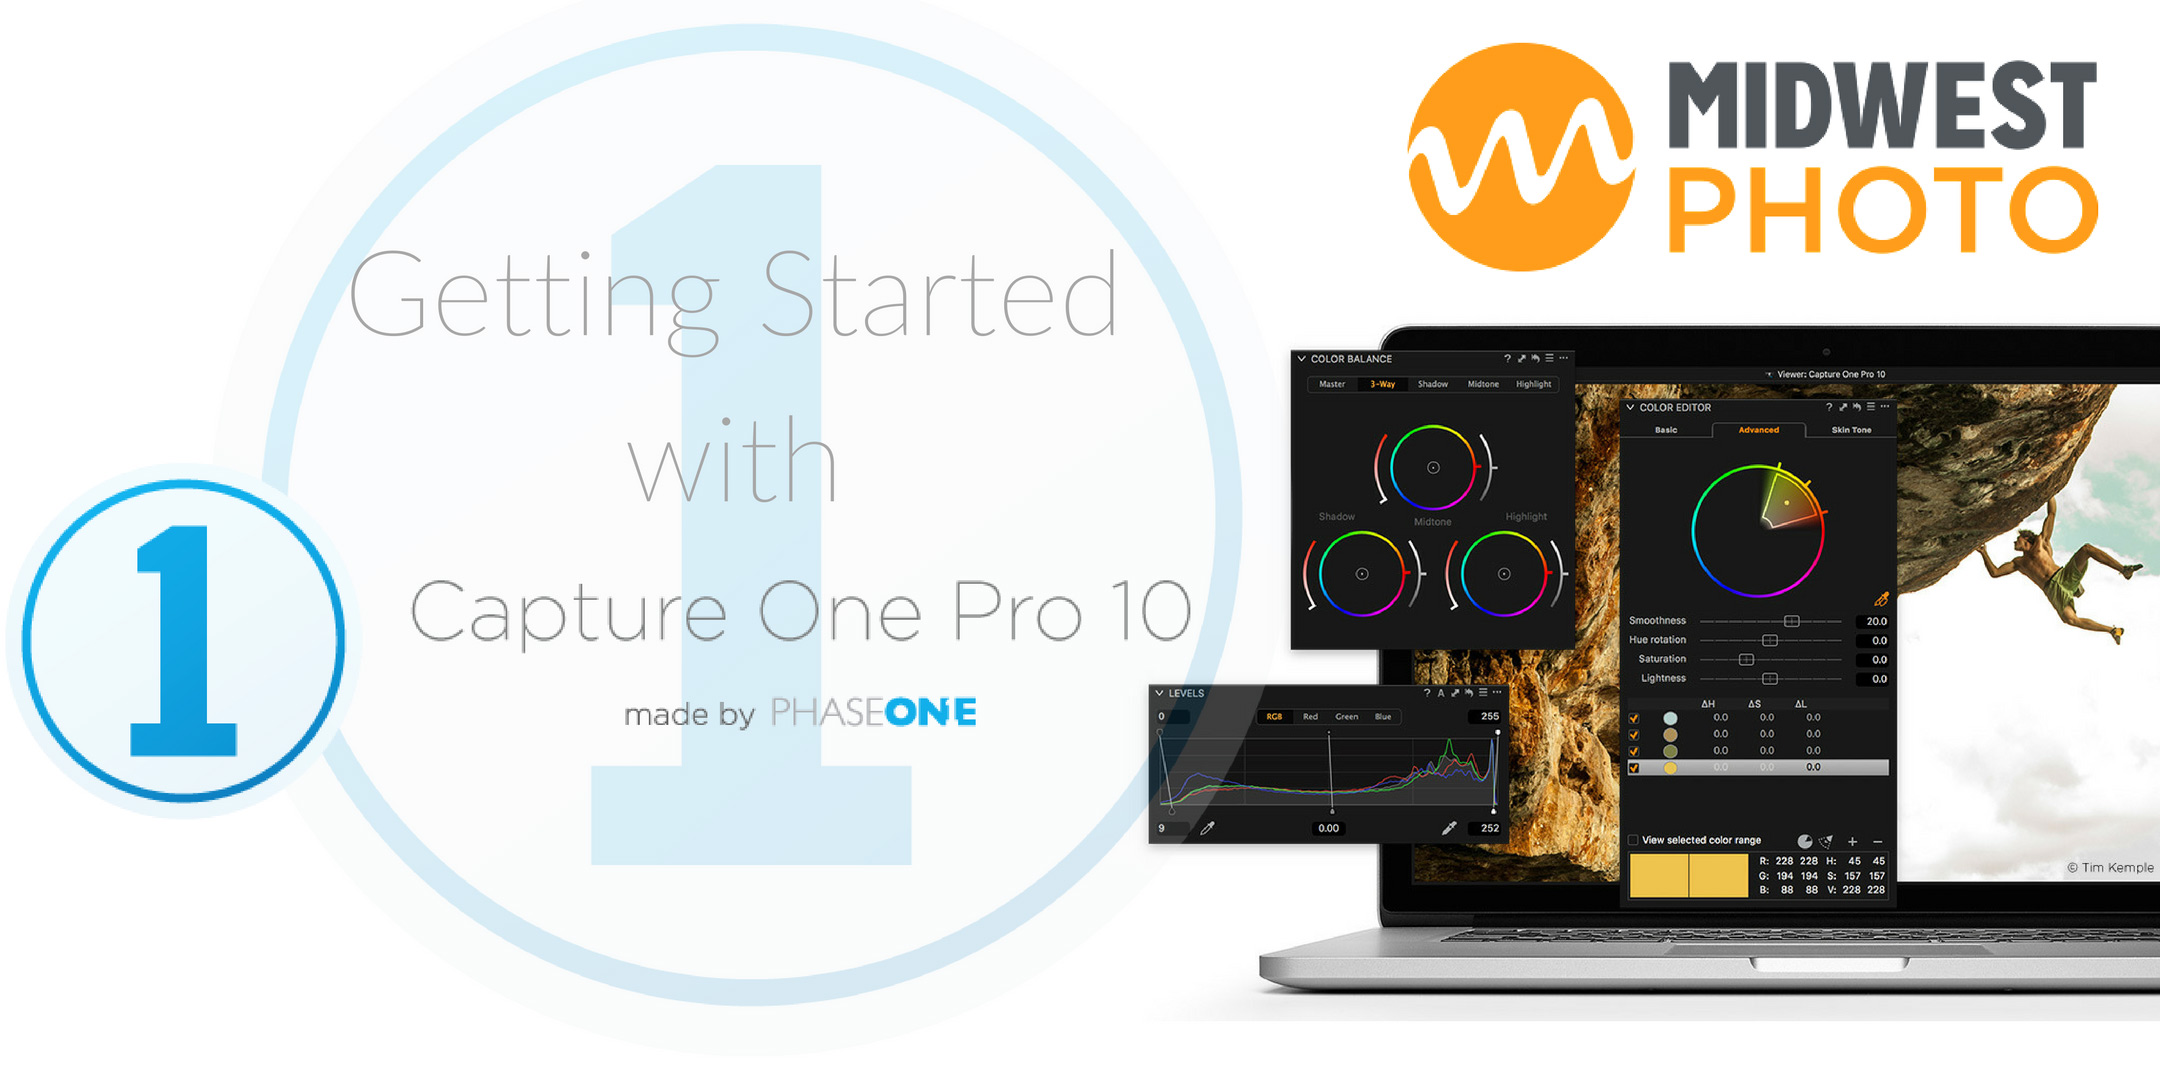 Getting Started with Capture One